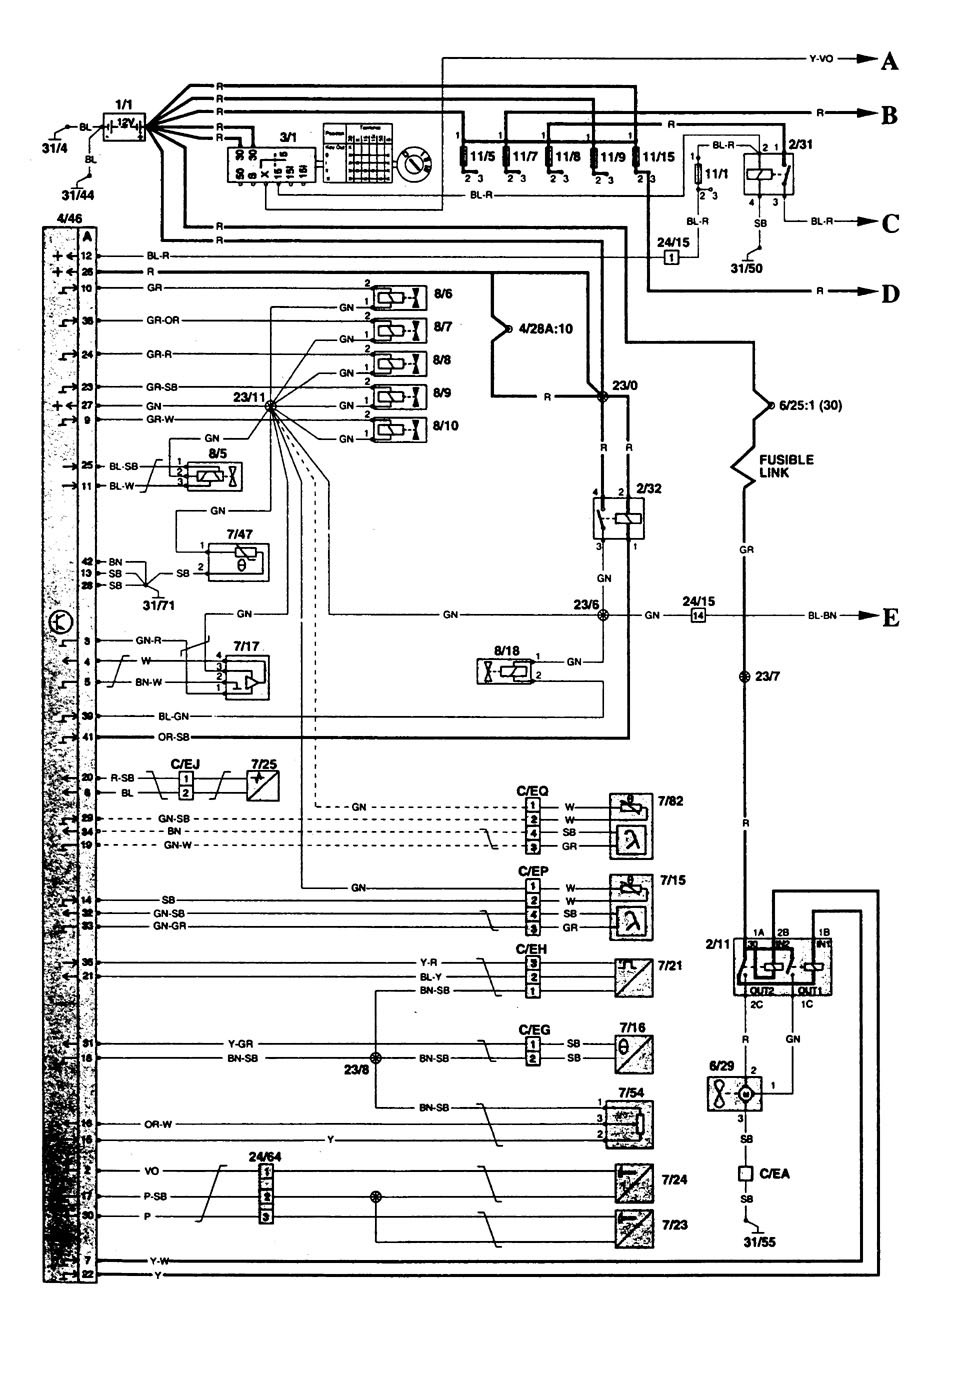 1996 Volvo 850 Wiring Diagram Free For You 940 Engine Belts Master Electric Motor 1997 1995